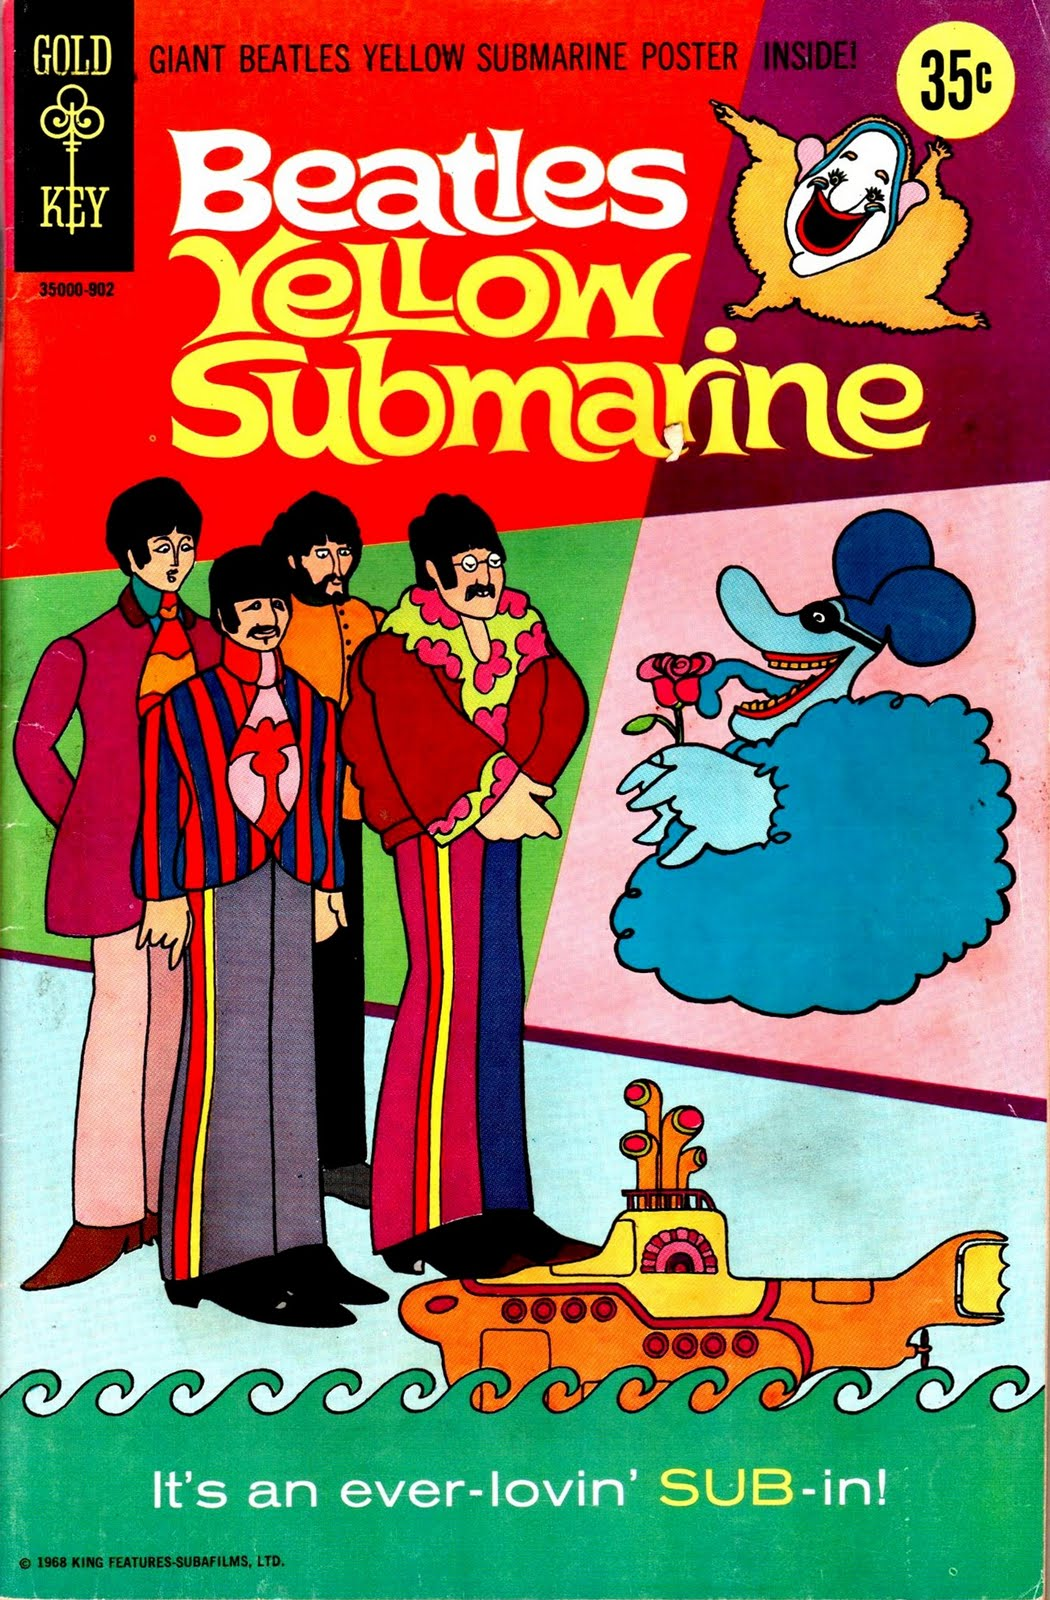 patrick owsley cartoon art and more yellow submarine gold key comic cover poster. Black Bedroom Furniture Sets. Home Design Ideas